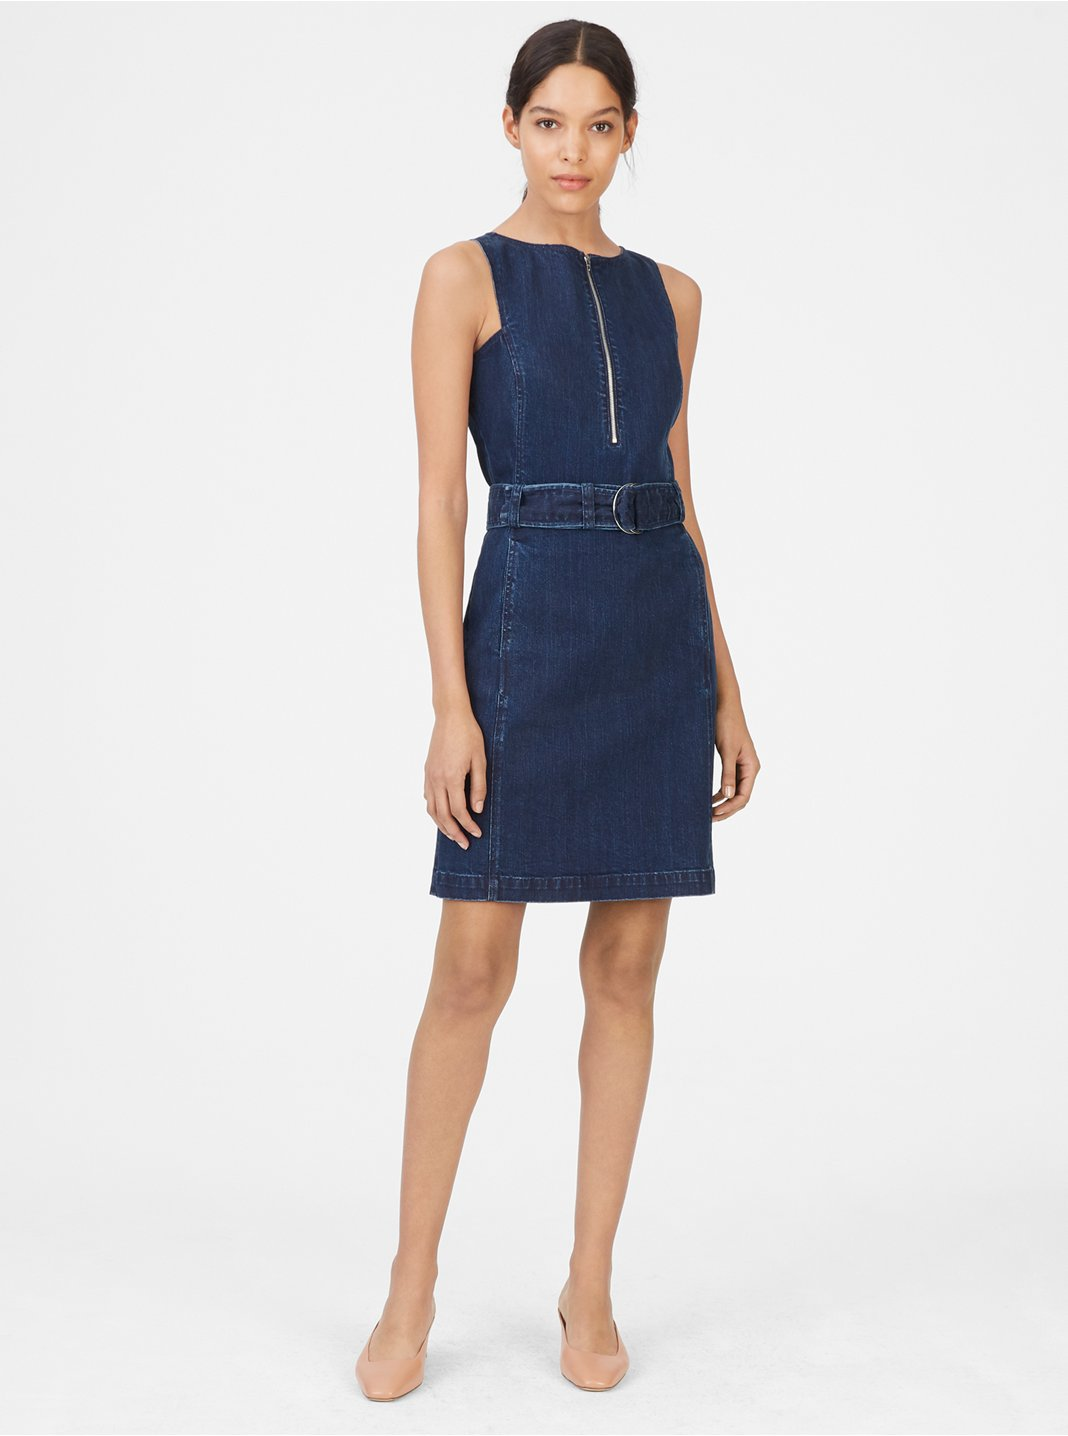 8d1e0a86 Womens Dresses | Club Monaco